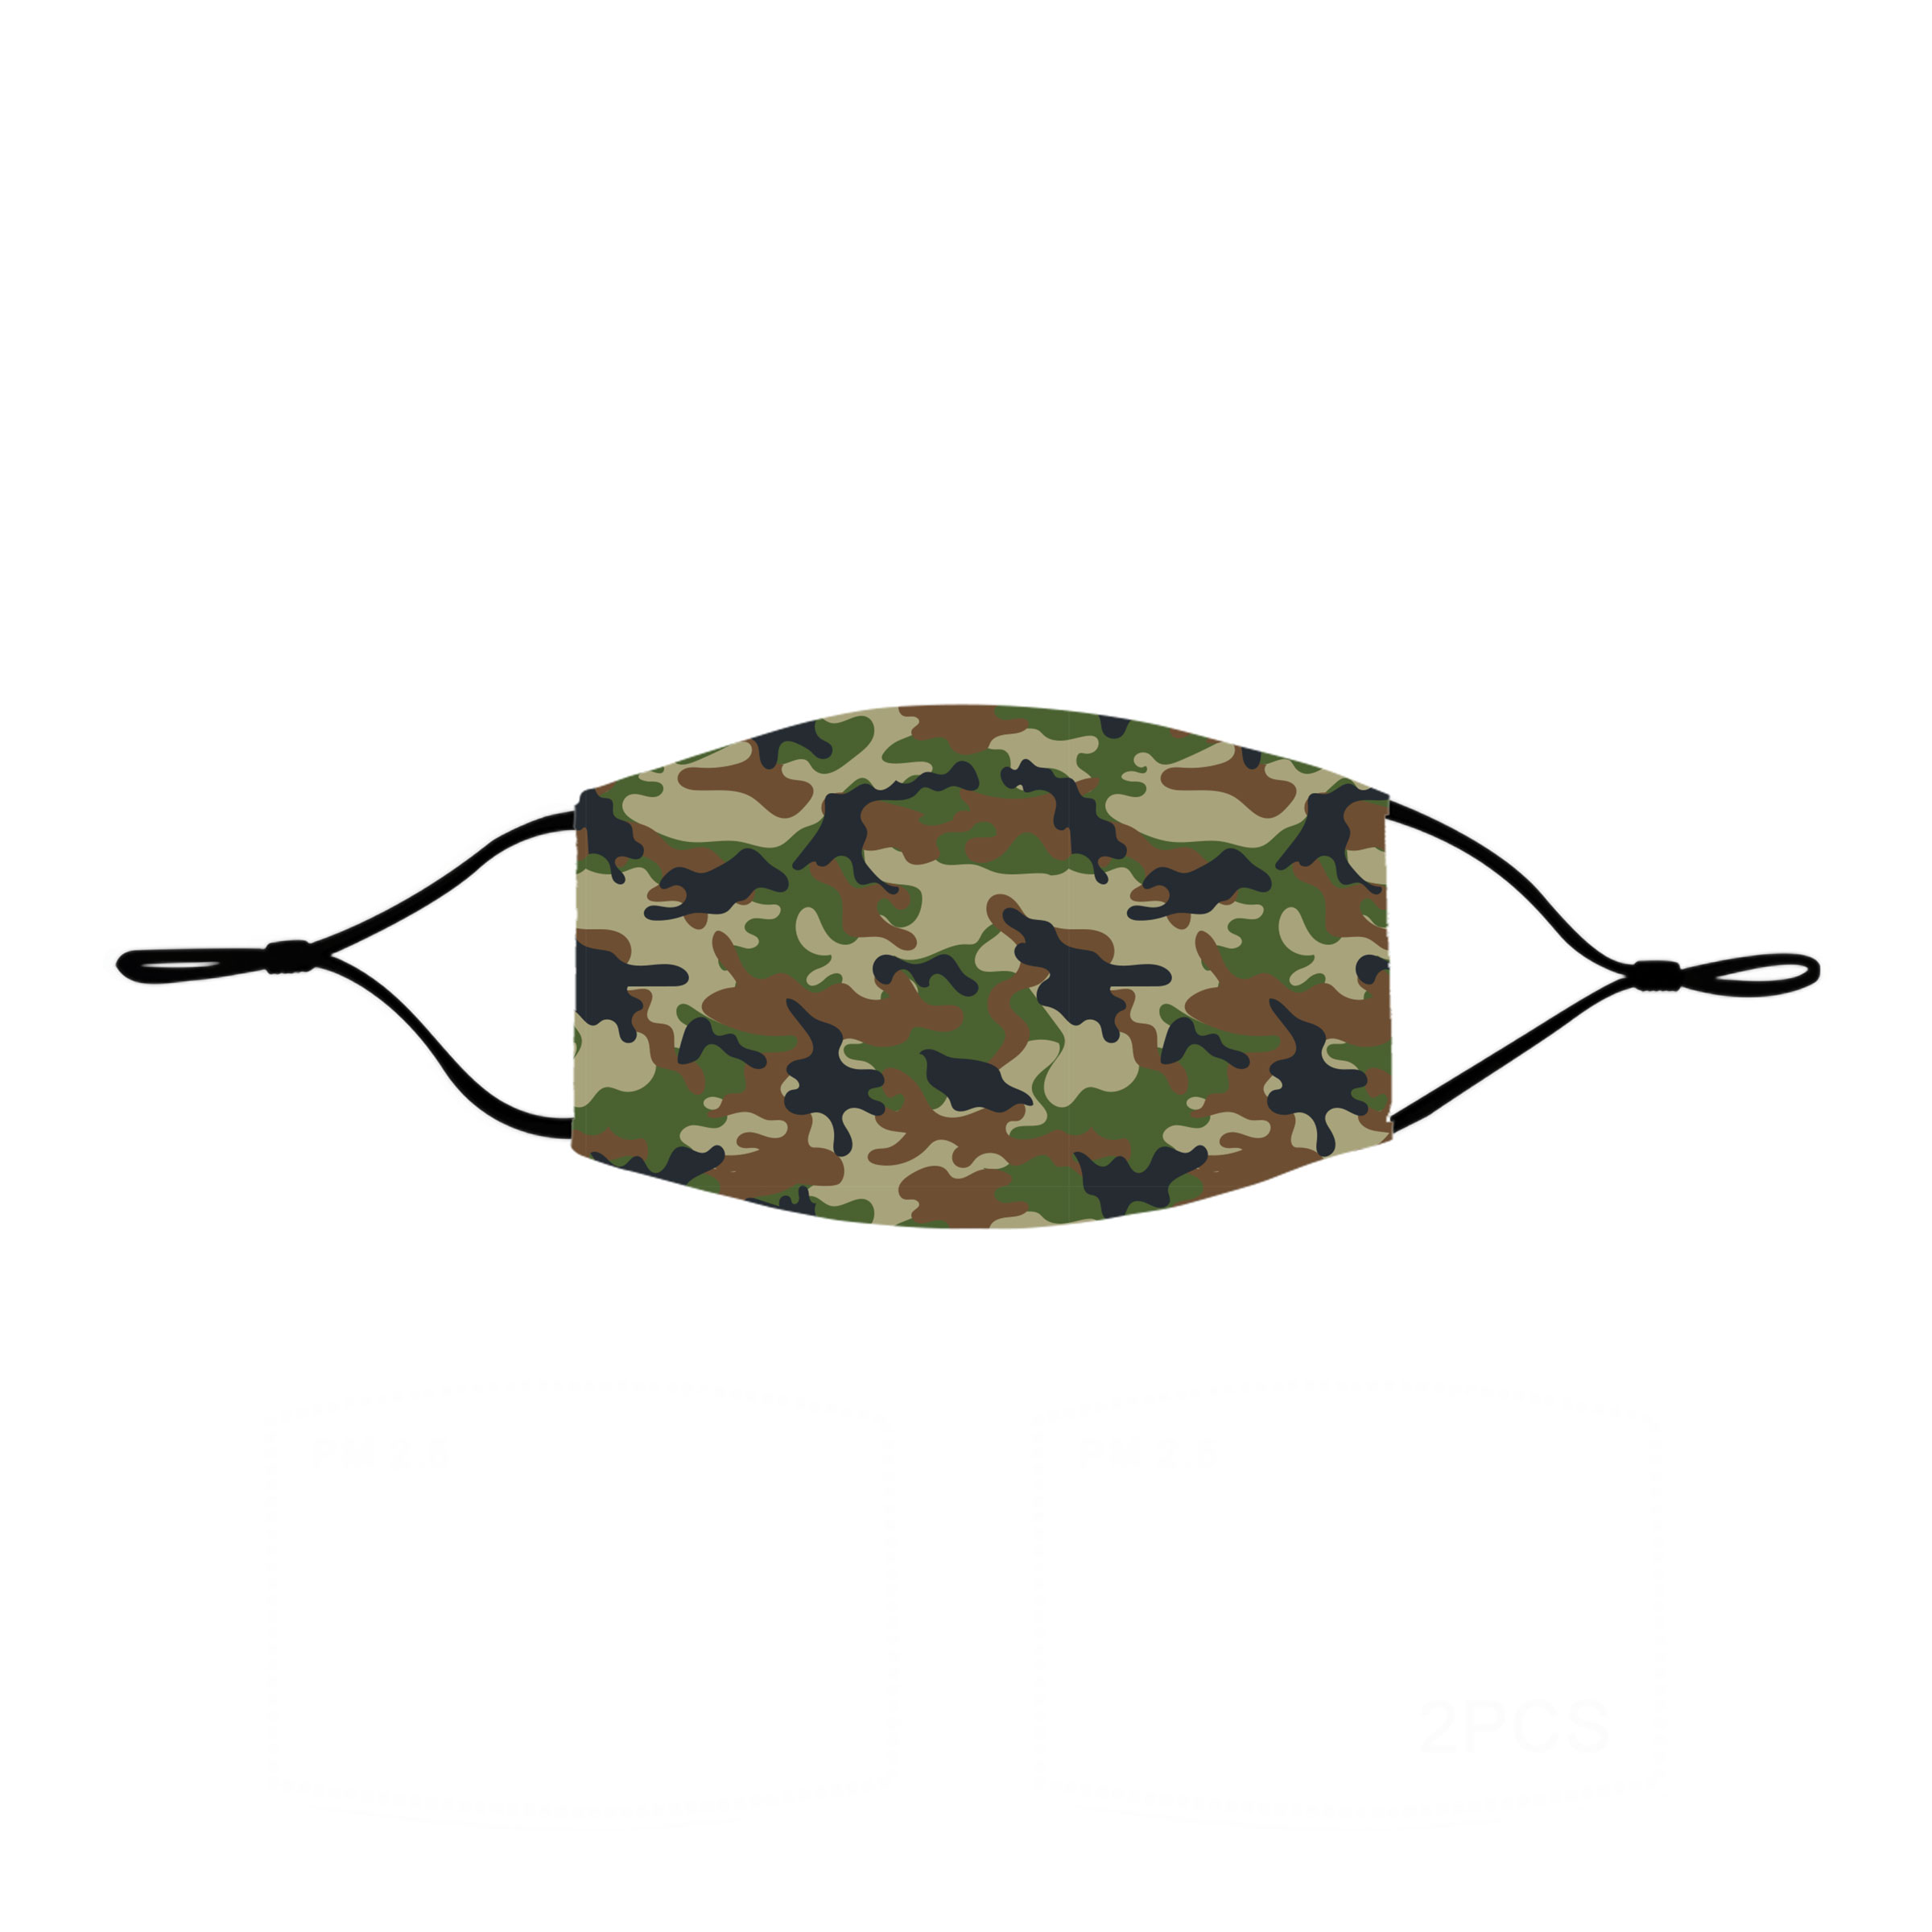 Camo - Non-Medical Face Mask (M - Youth)